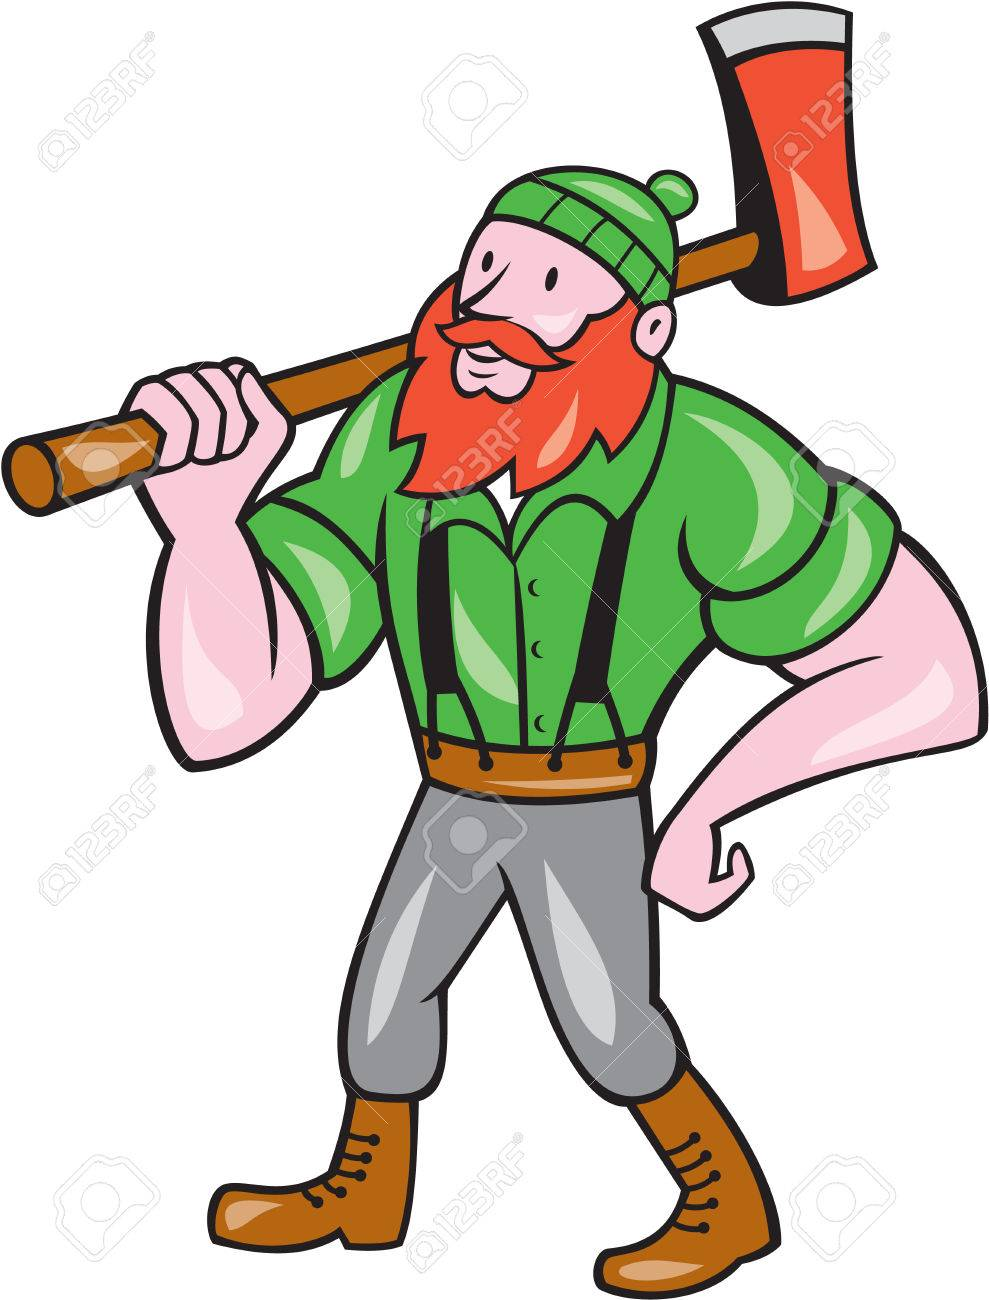 medium resolution of illustration of a paul bunyan an american lumberjack sawyer forest holding an axe on shoulder looking